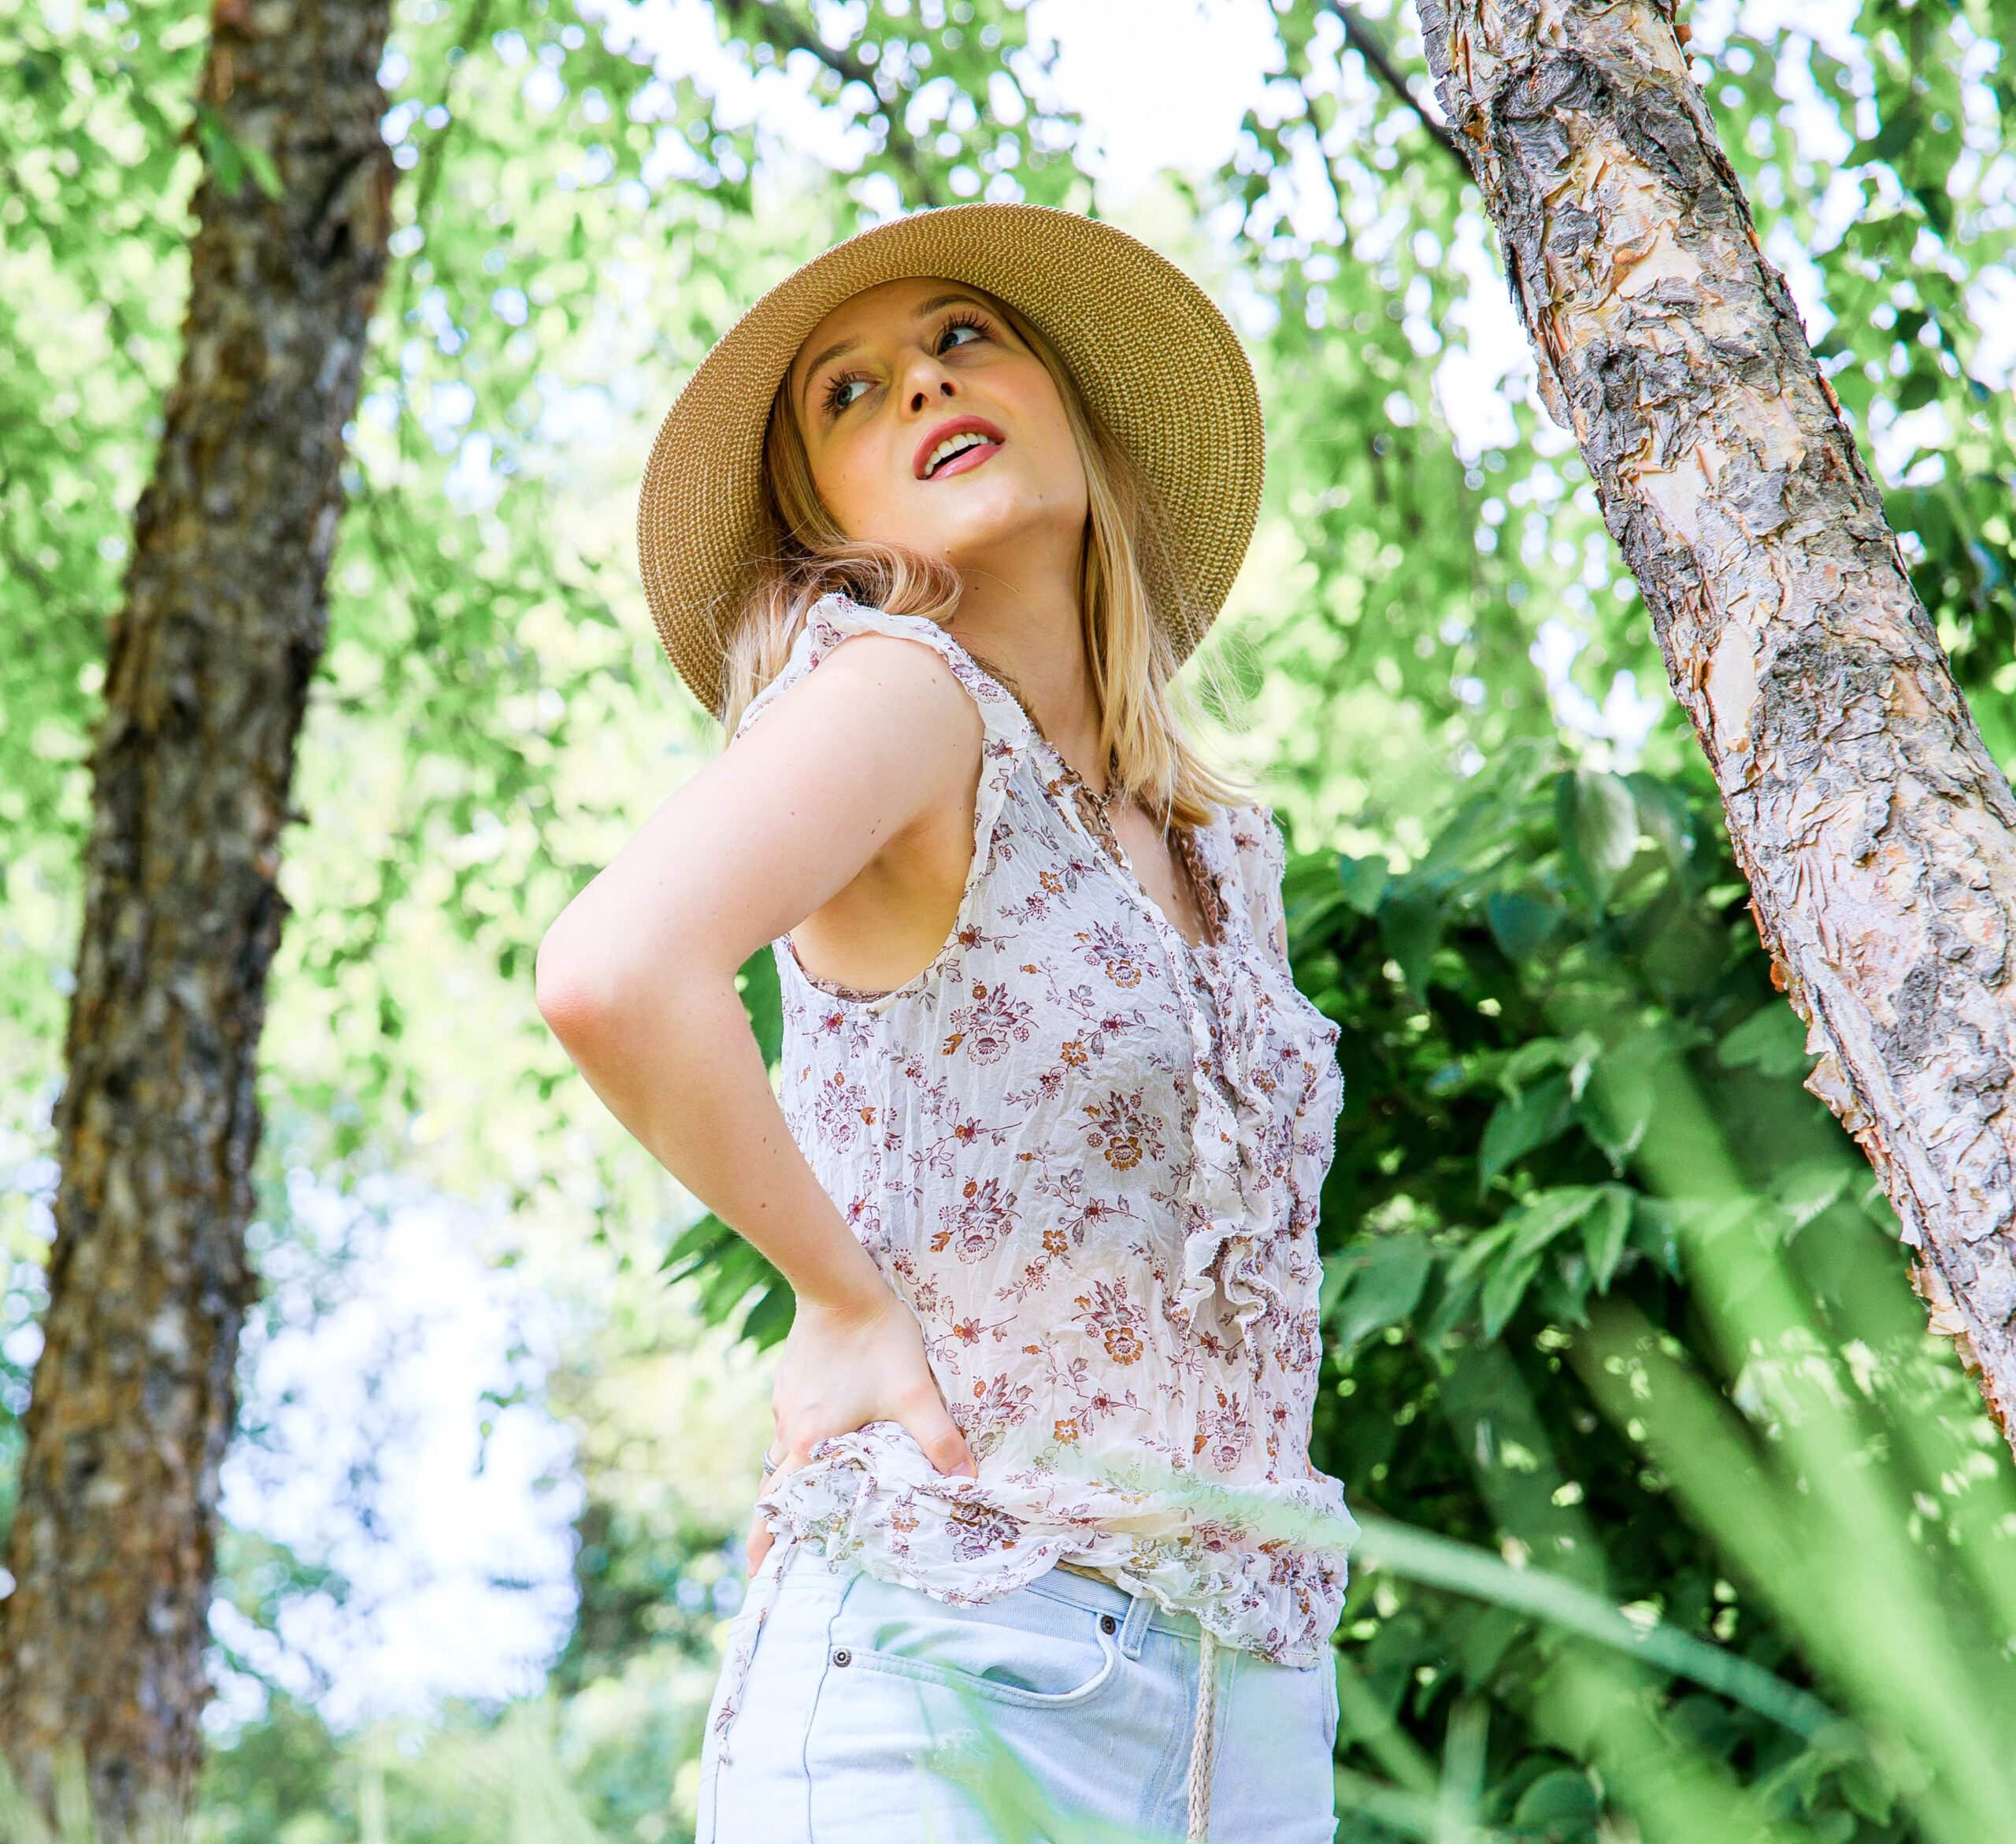 A blonde woman, wearing a hat, looking over her shoulder passed the camera. Portrait taken by Hance Studios in Berkley, Michigan 48072.